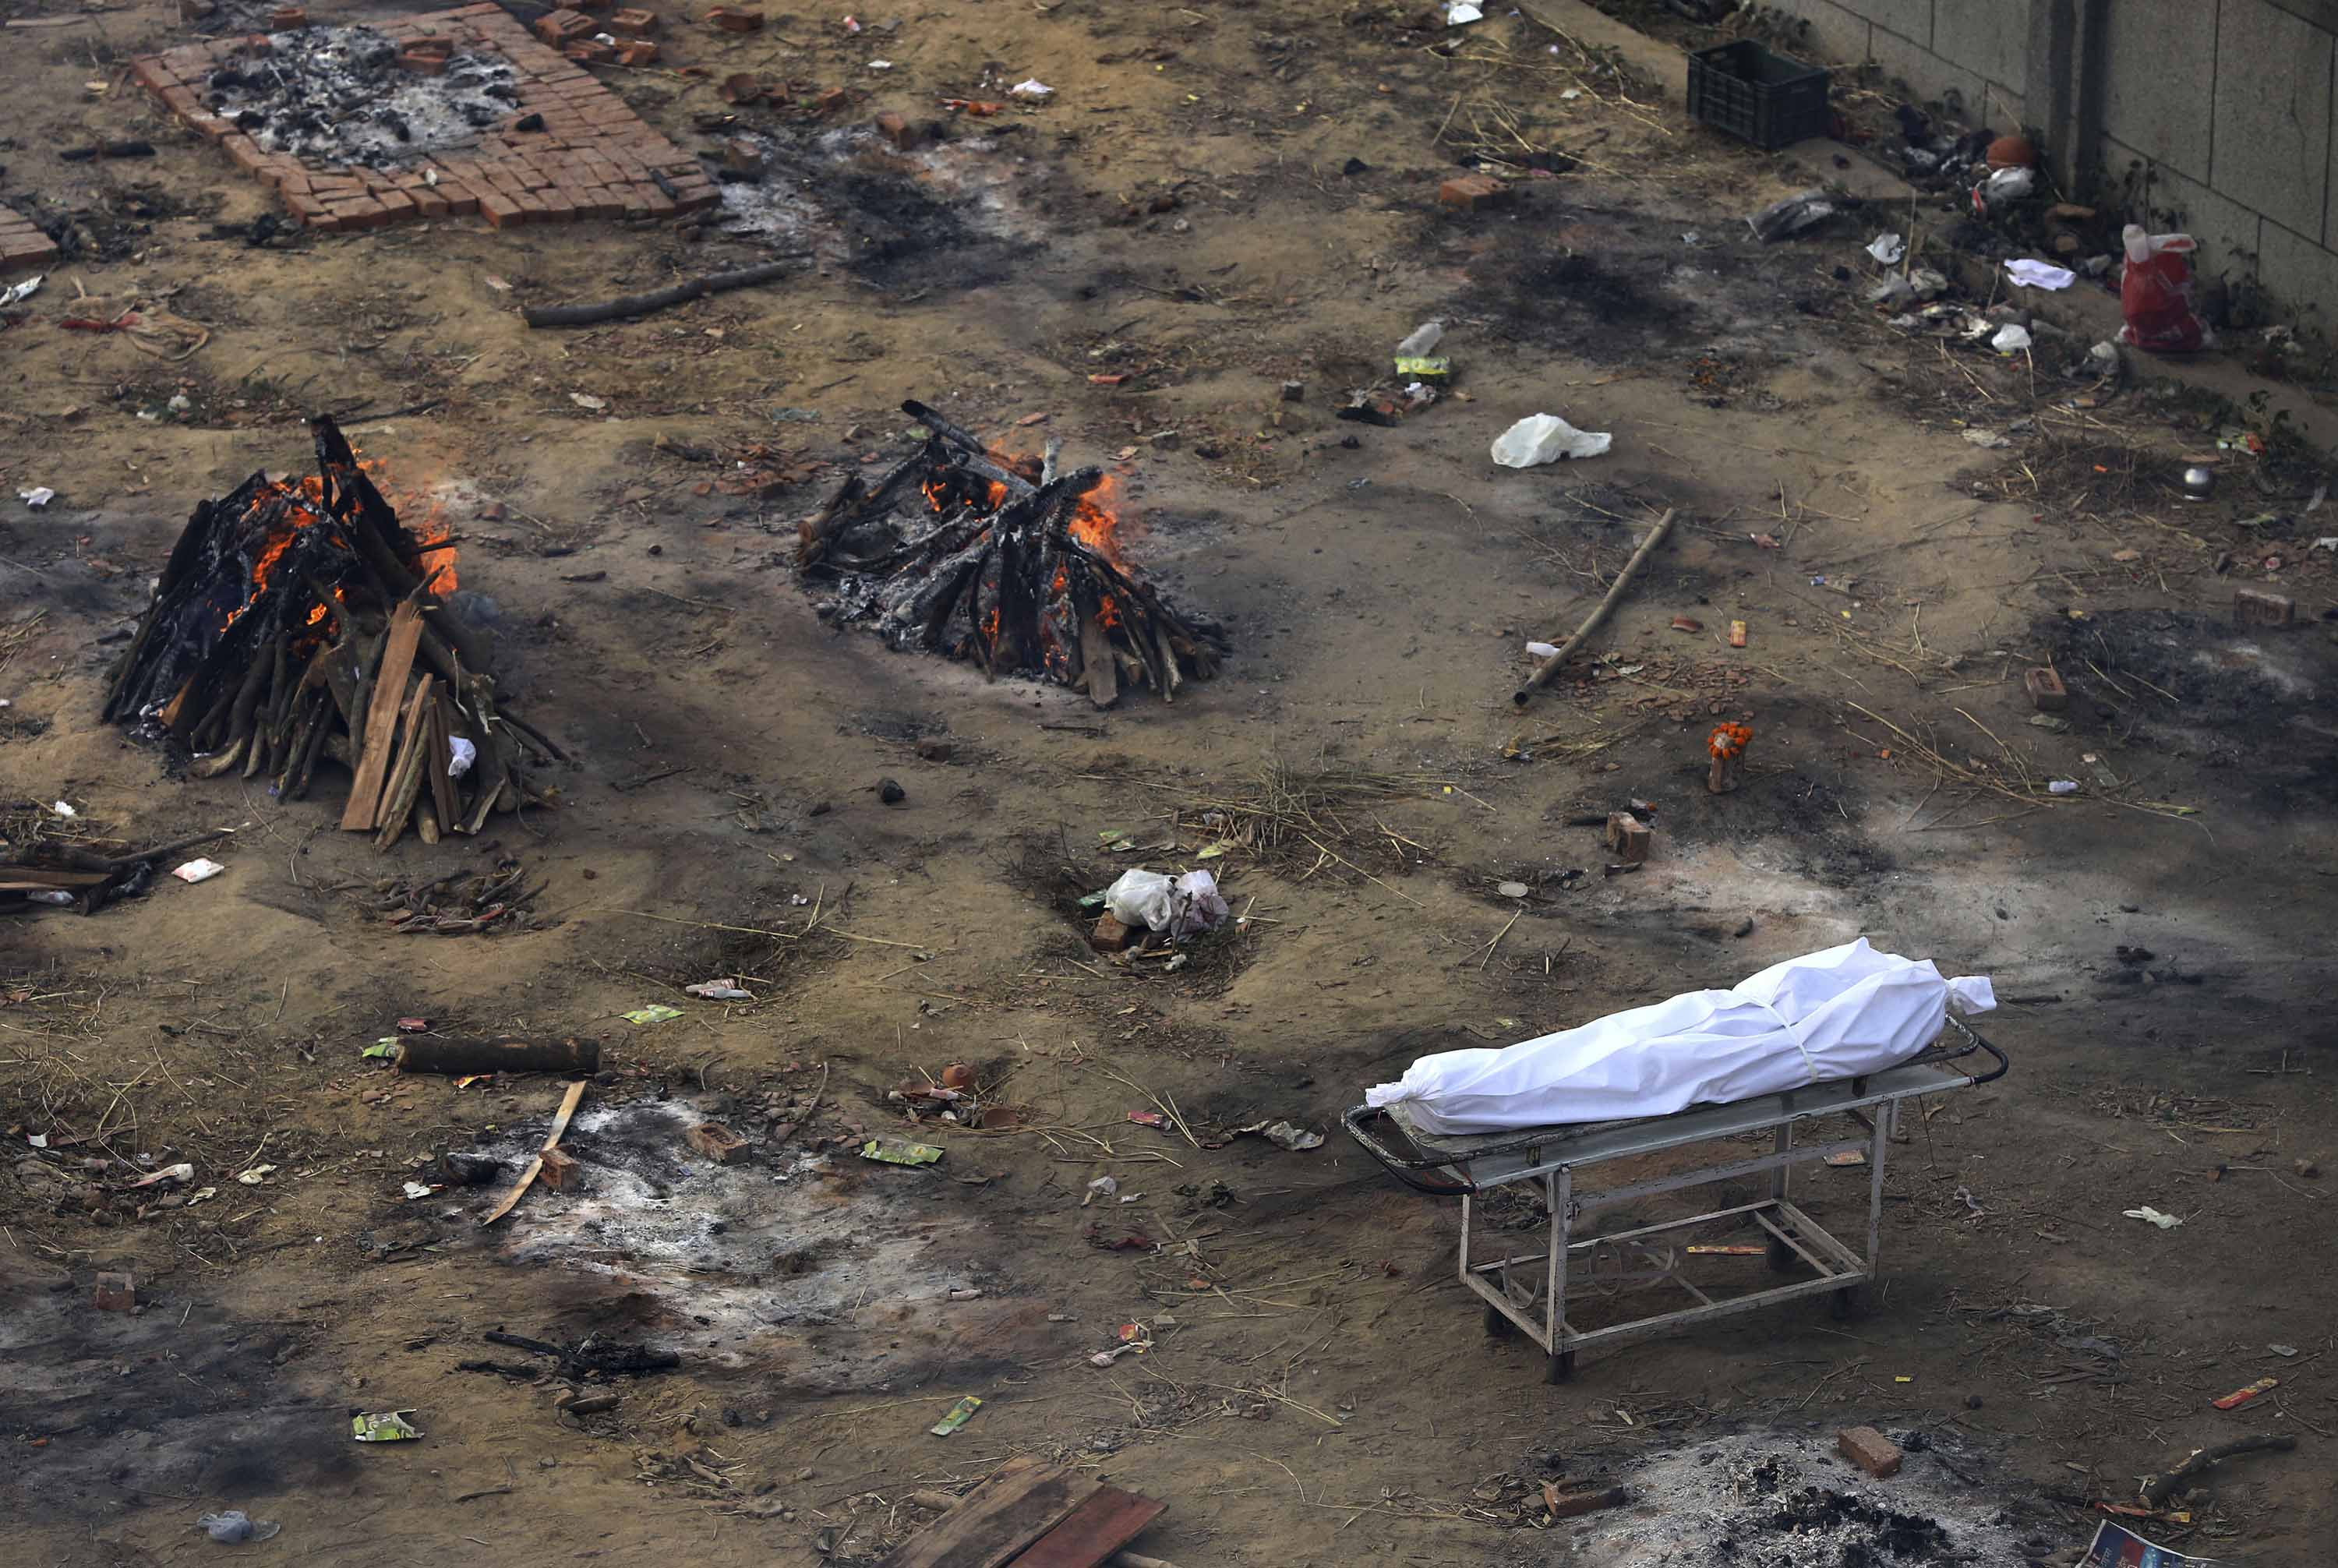 A body waiting for cremation is seen among funeral pyres of Covid-19 victims at a ground that has been converted into a mass crematorium in New Delhi, on April 21.